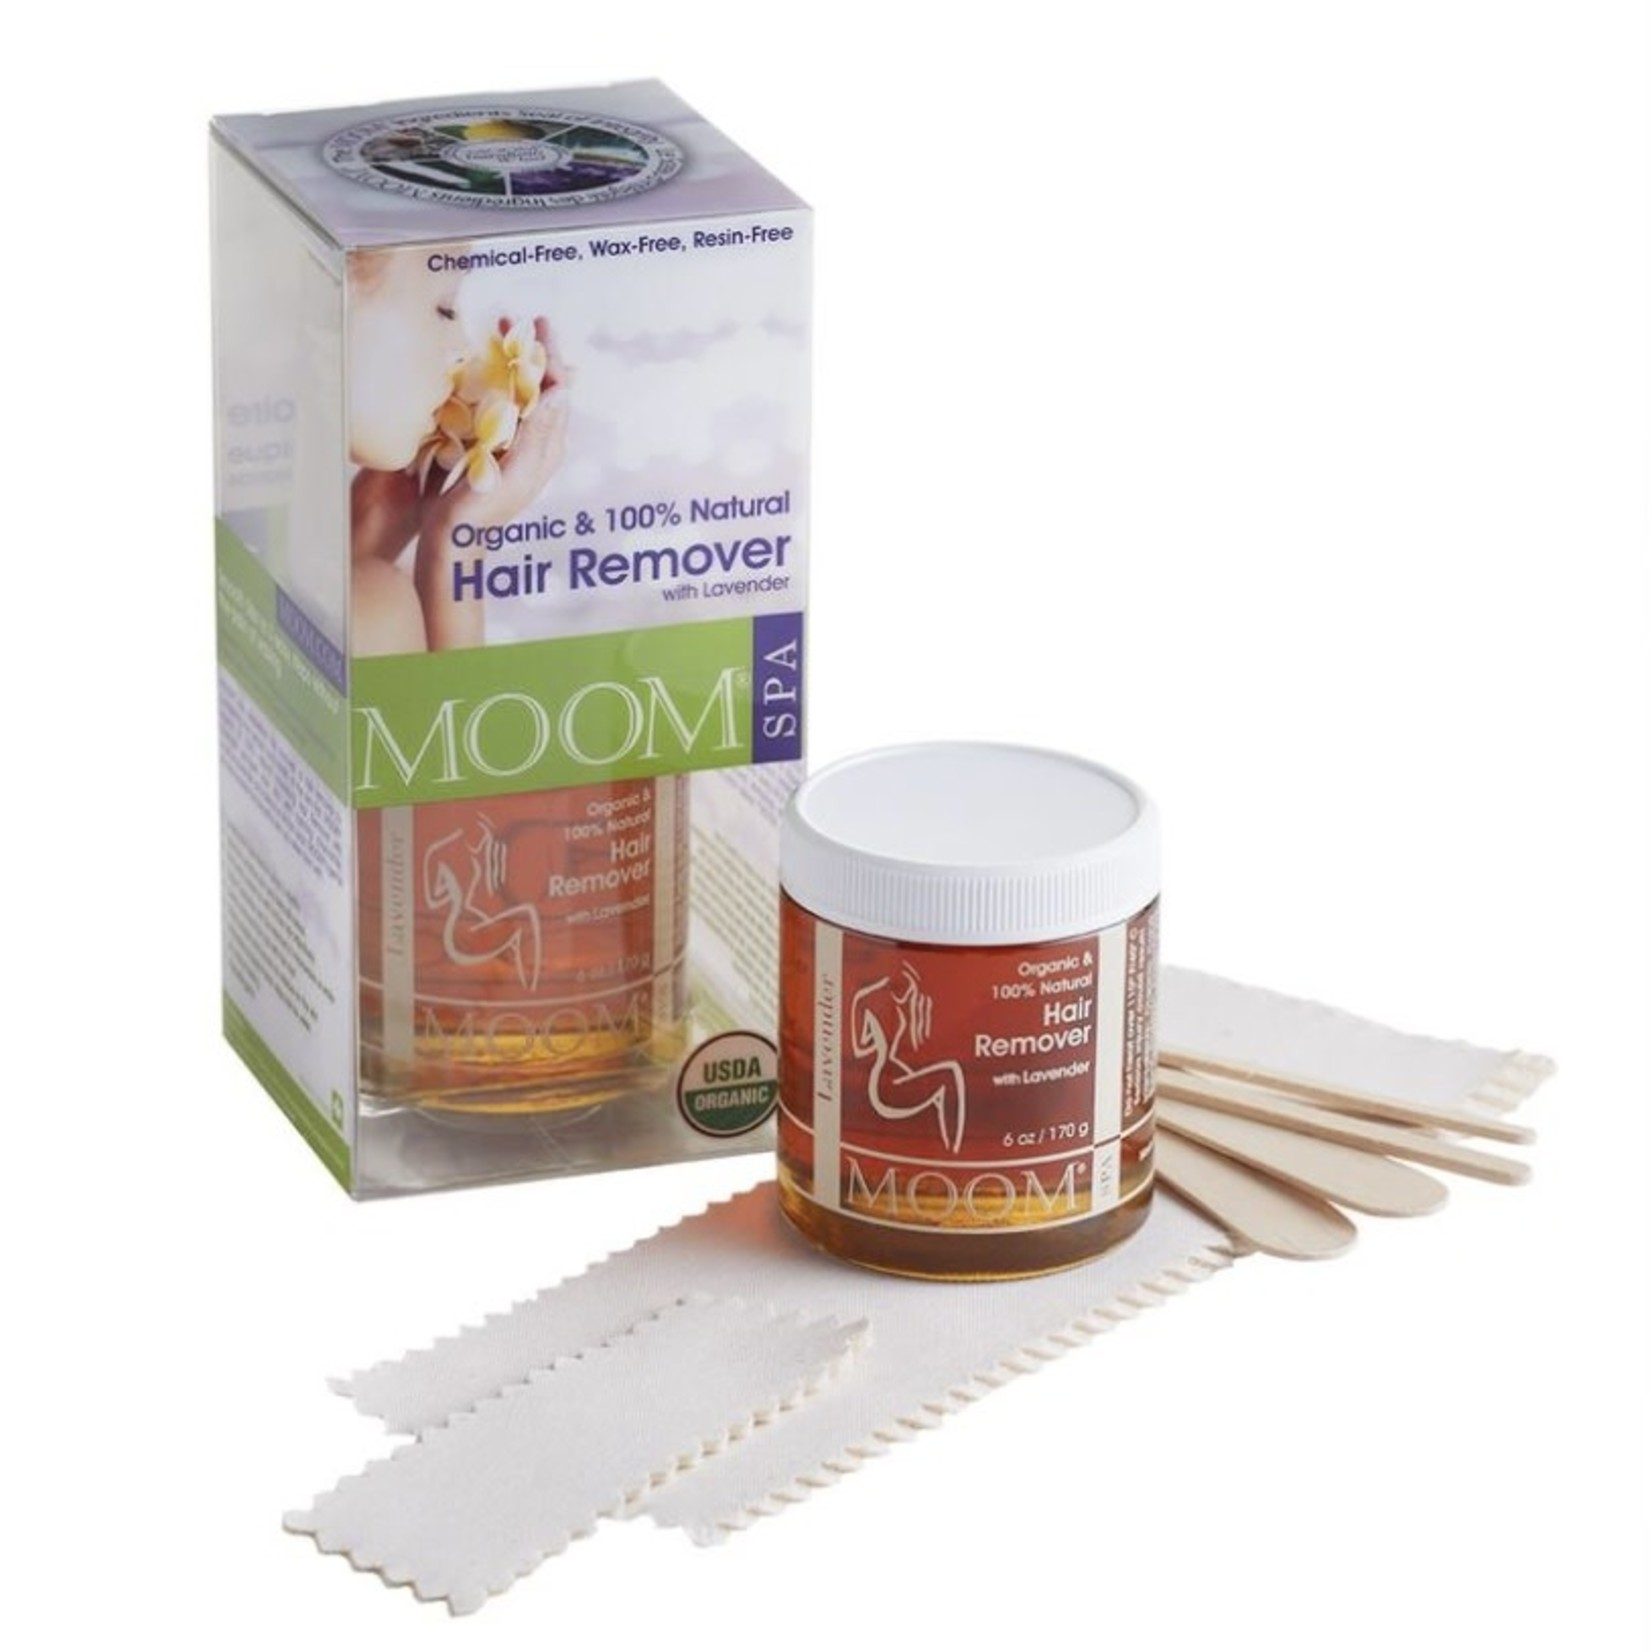 Moom Moom Hair Remover with Lavender